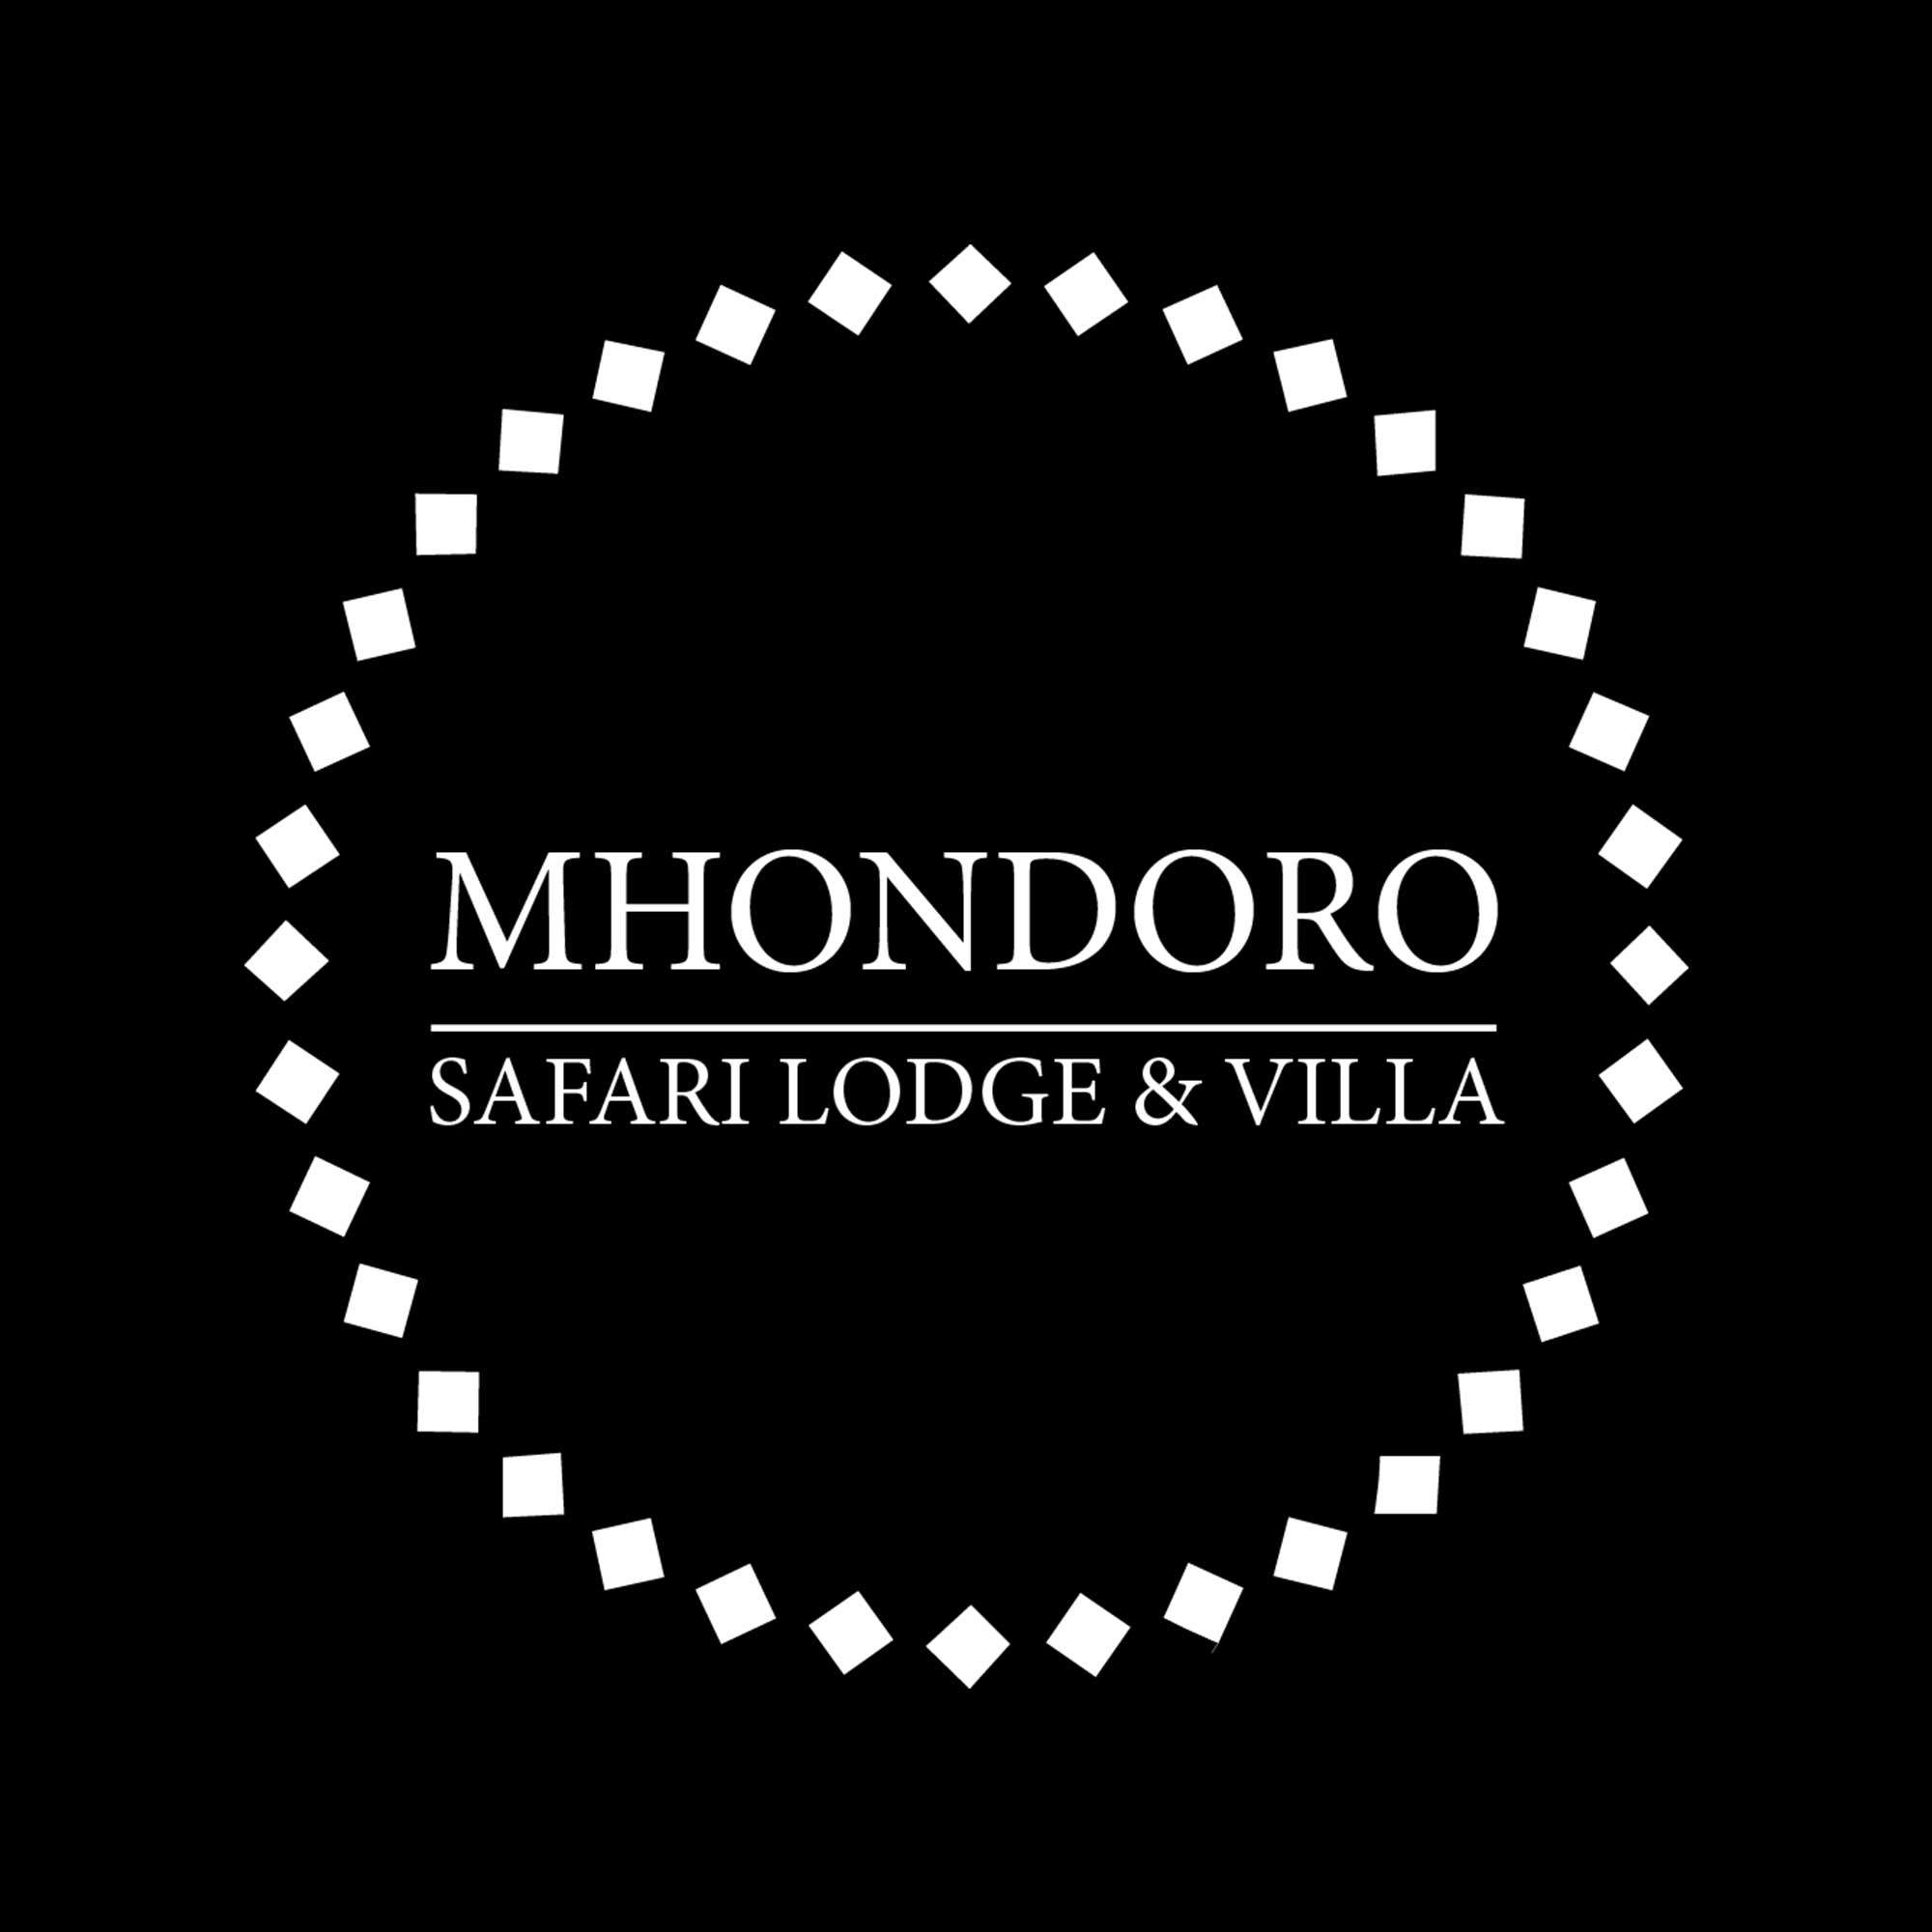 mhondoro-safari-lodge-online-marketing-bureau-webdevelopment-haarlem-made-marketing-5